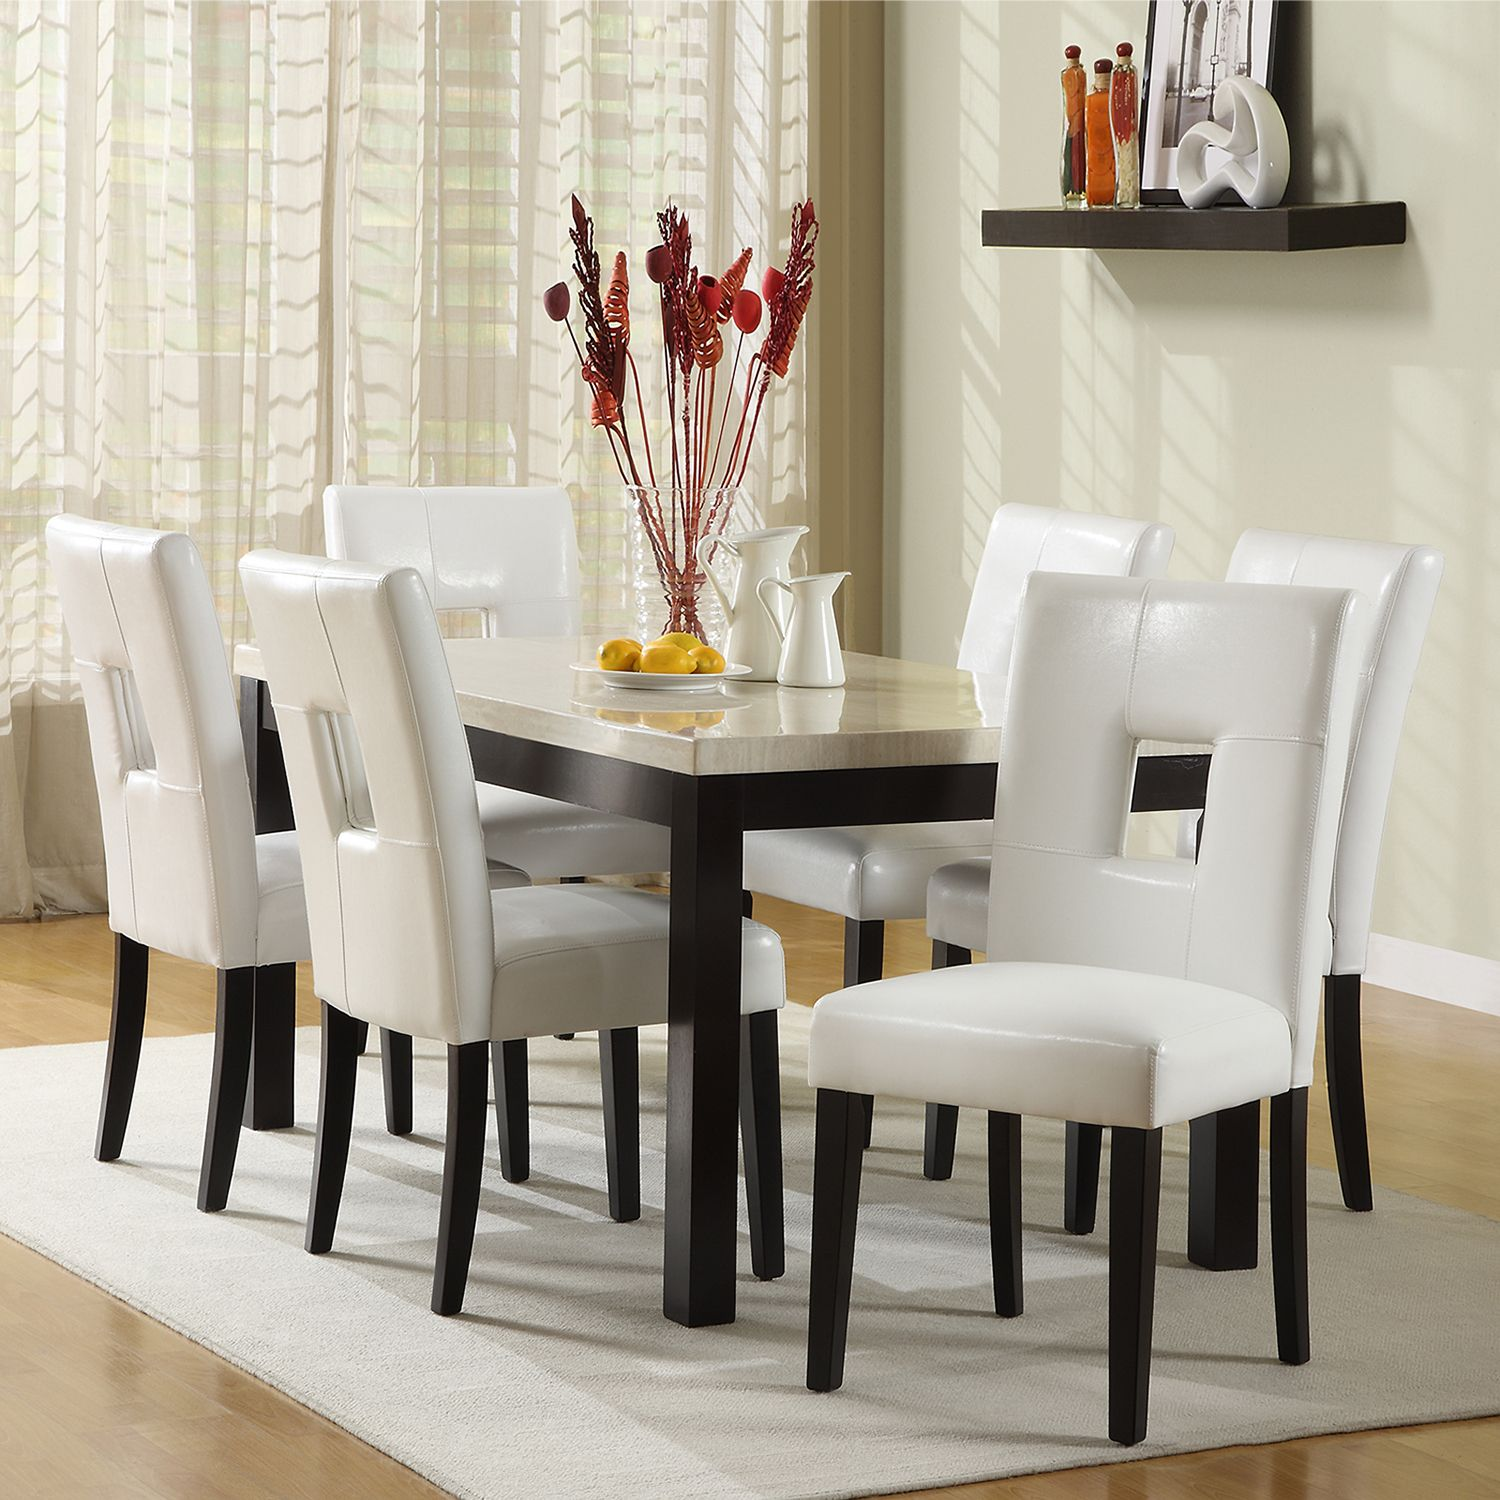 This beautiful white 7 piece dining set would make a stylish addition to your dining room. The comfortable white faux leather chairs feature a contemporary cut out back detailing that would make this elegant set ideal for entertaining.